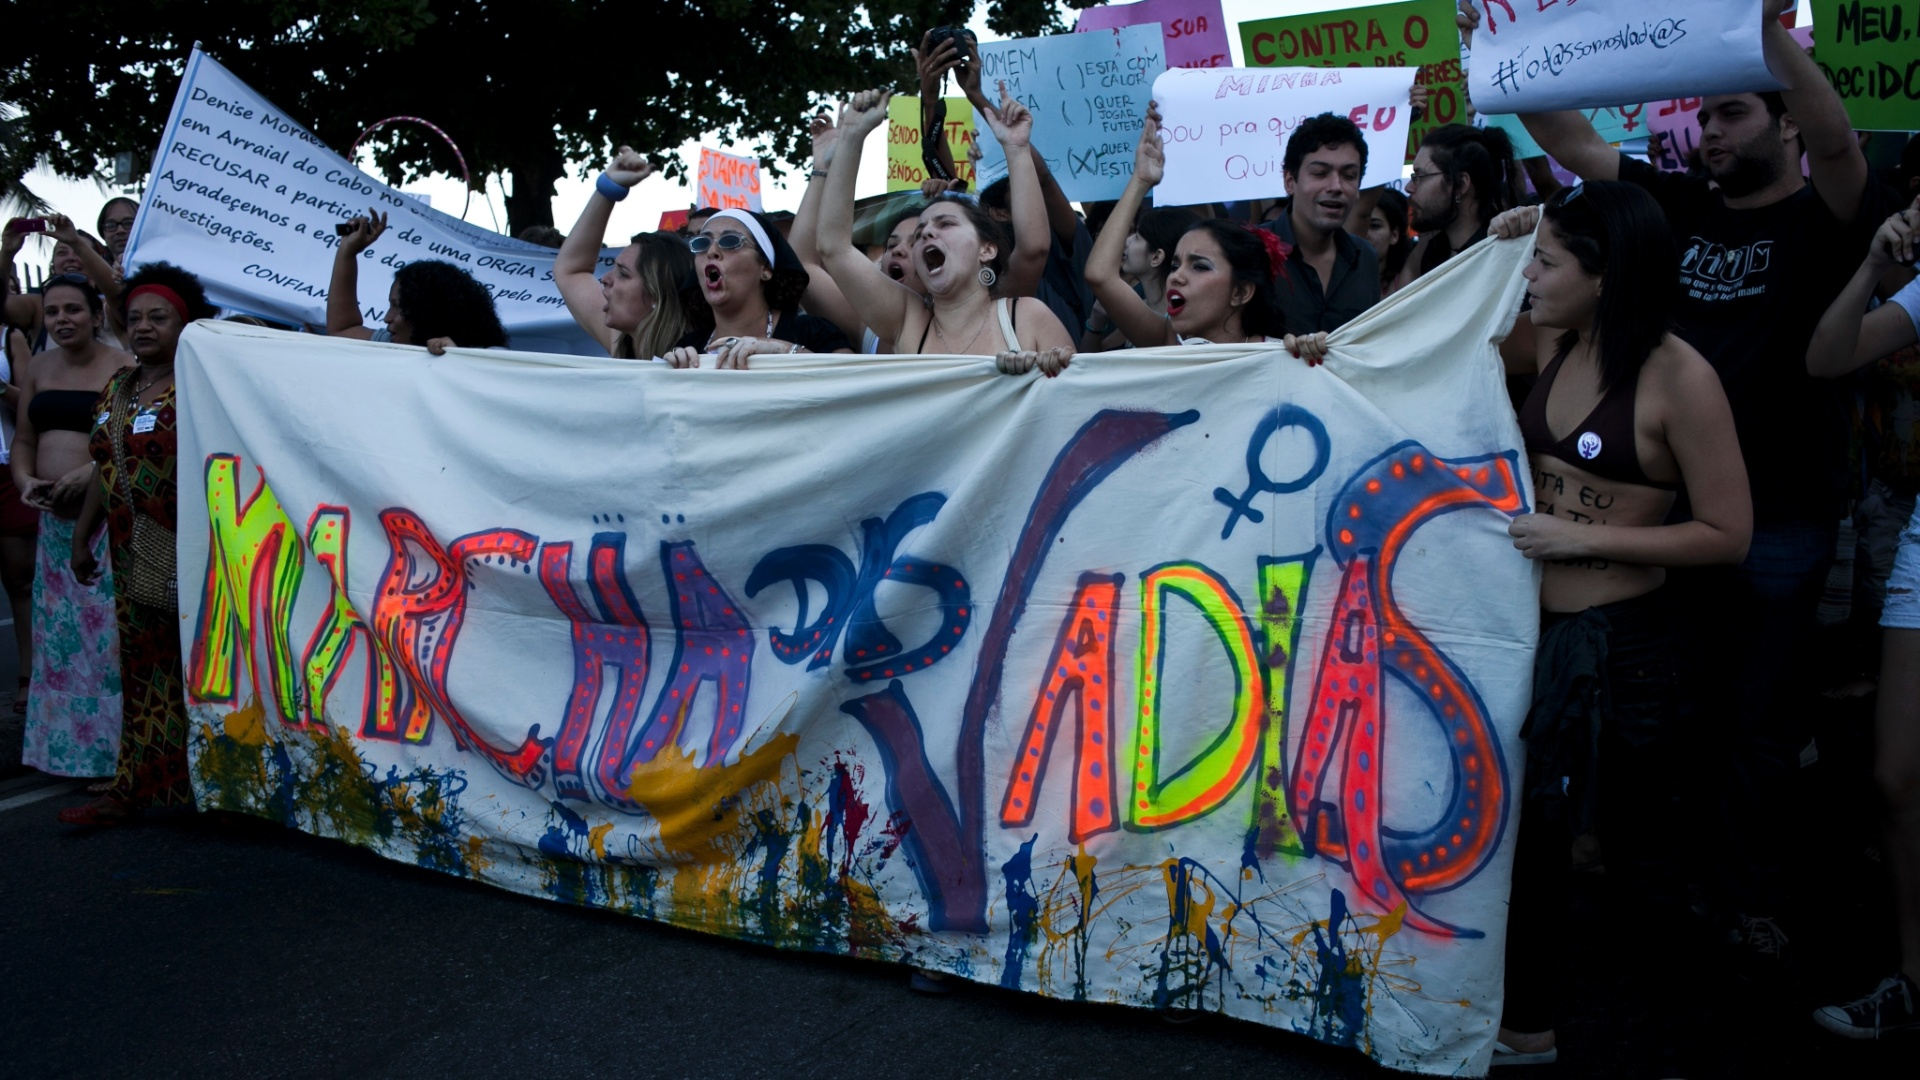  A Marcha das Vadias tomou o calado de Copacabana neste sbado (26), no Rio de Janeiro